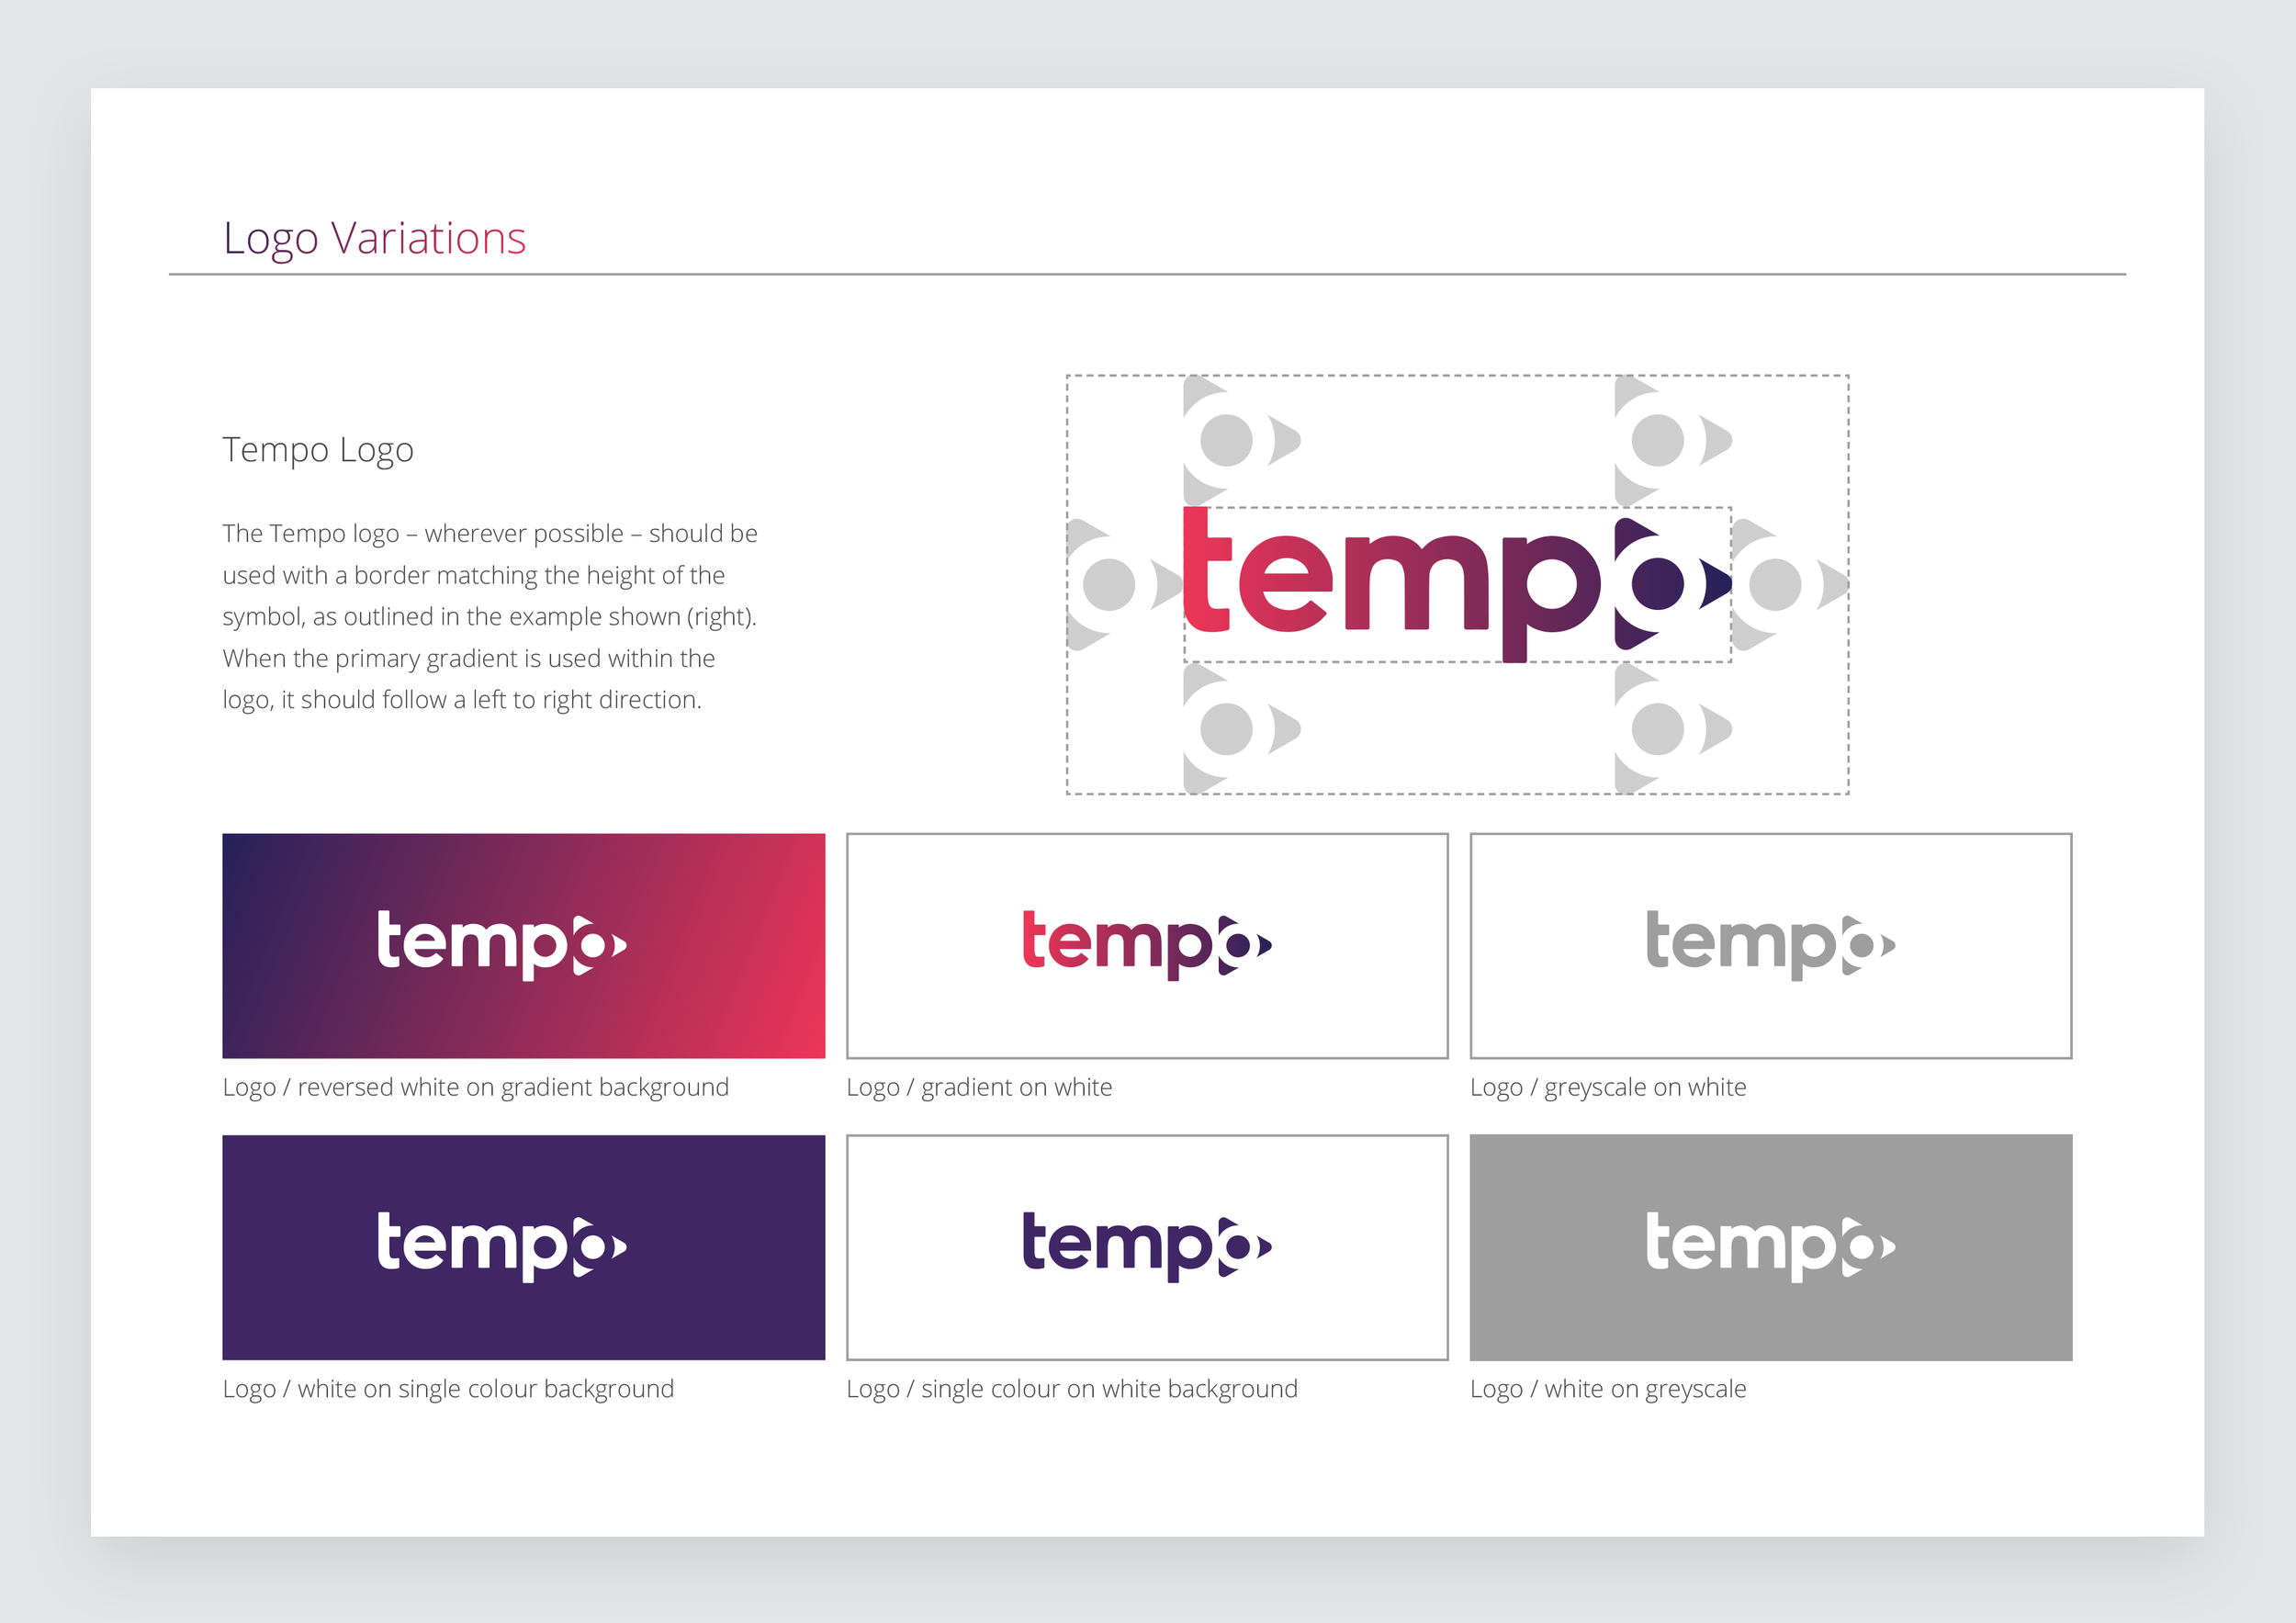 Tempo Brand Guidelines_S01B.png